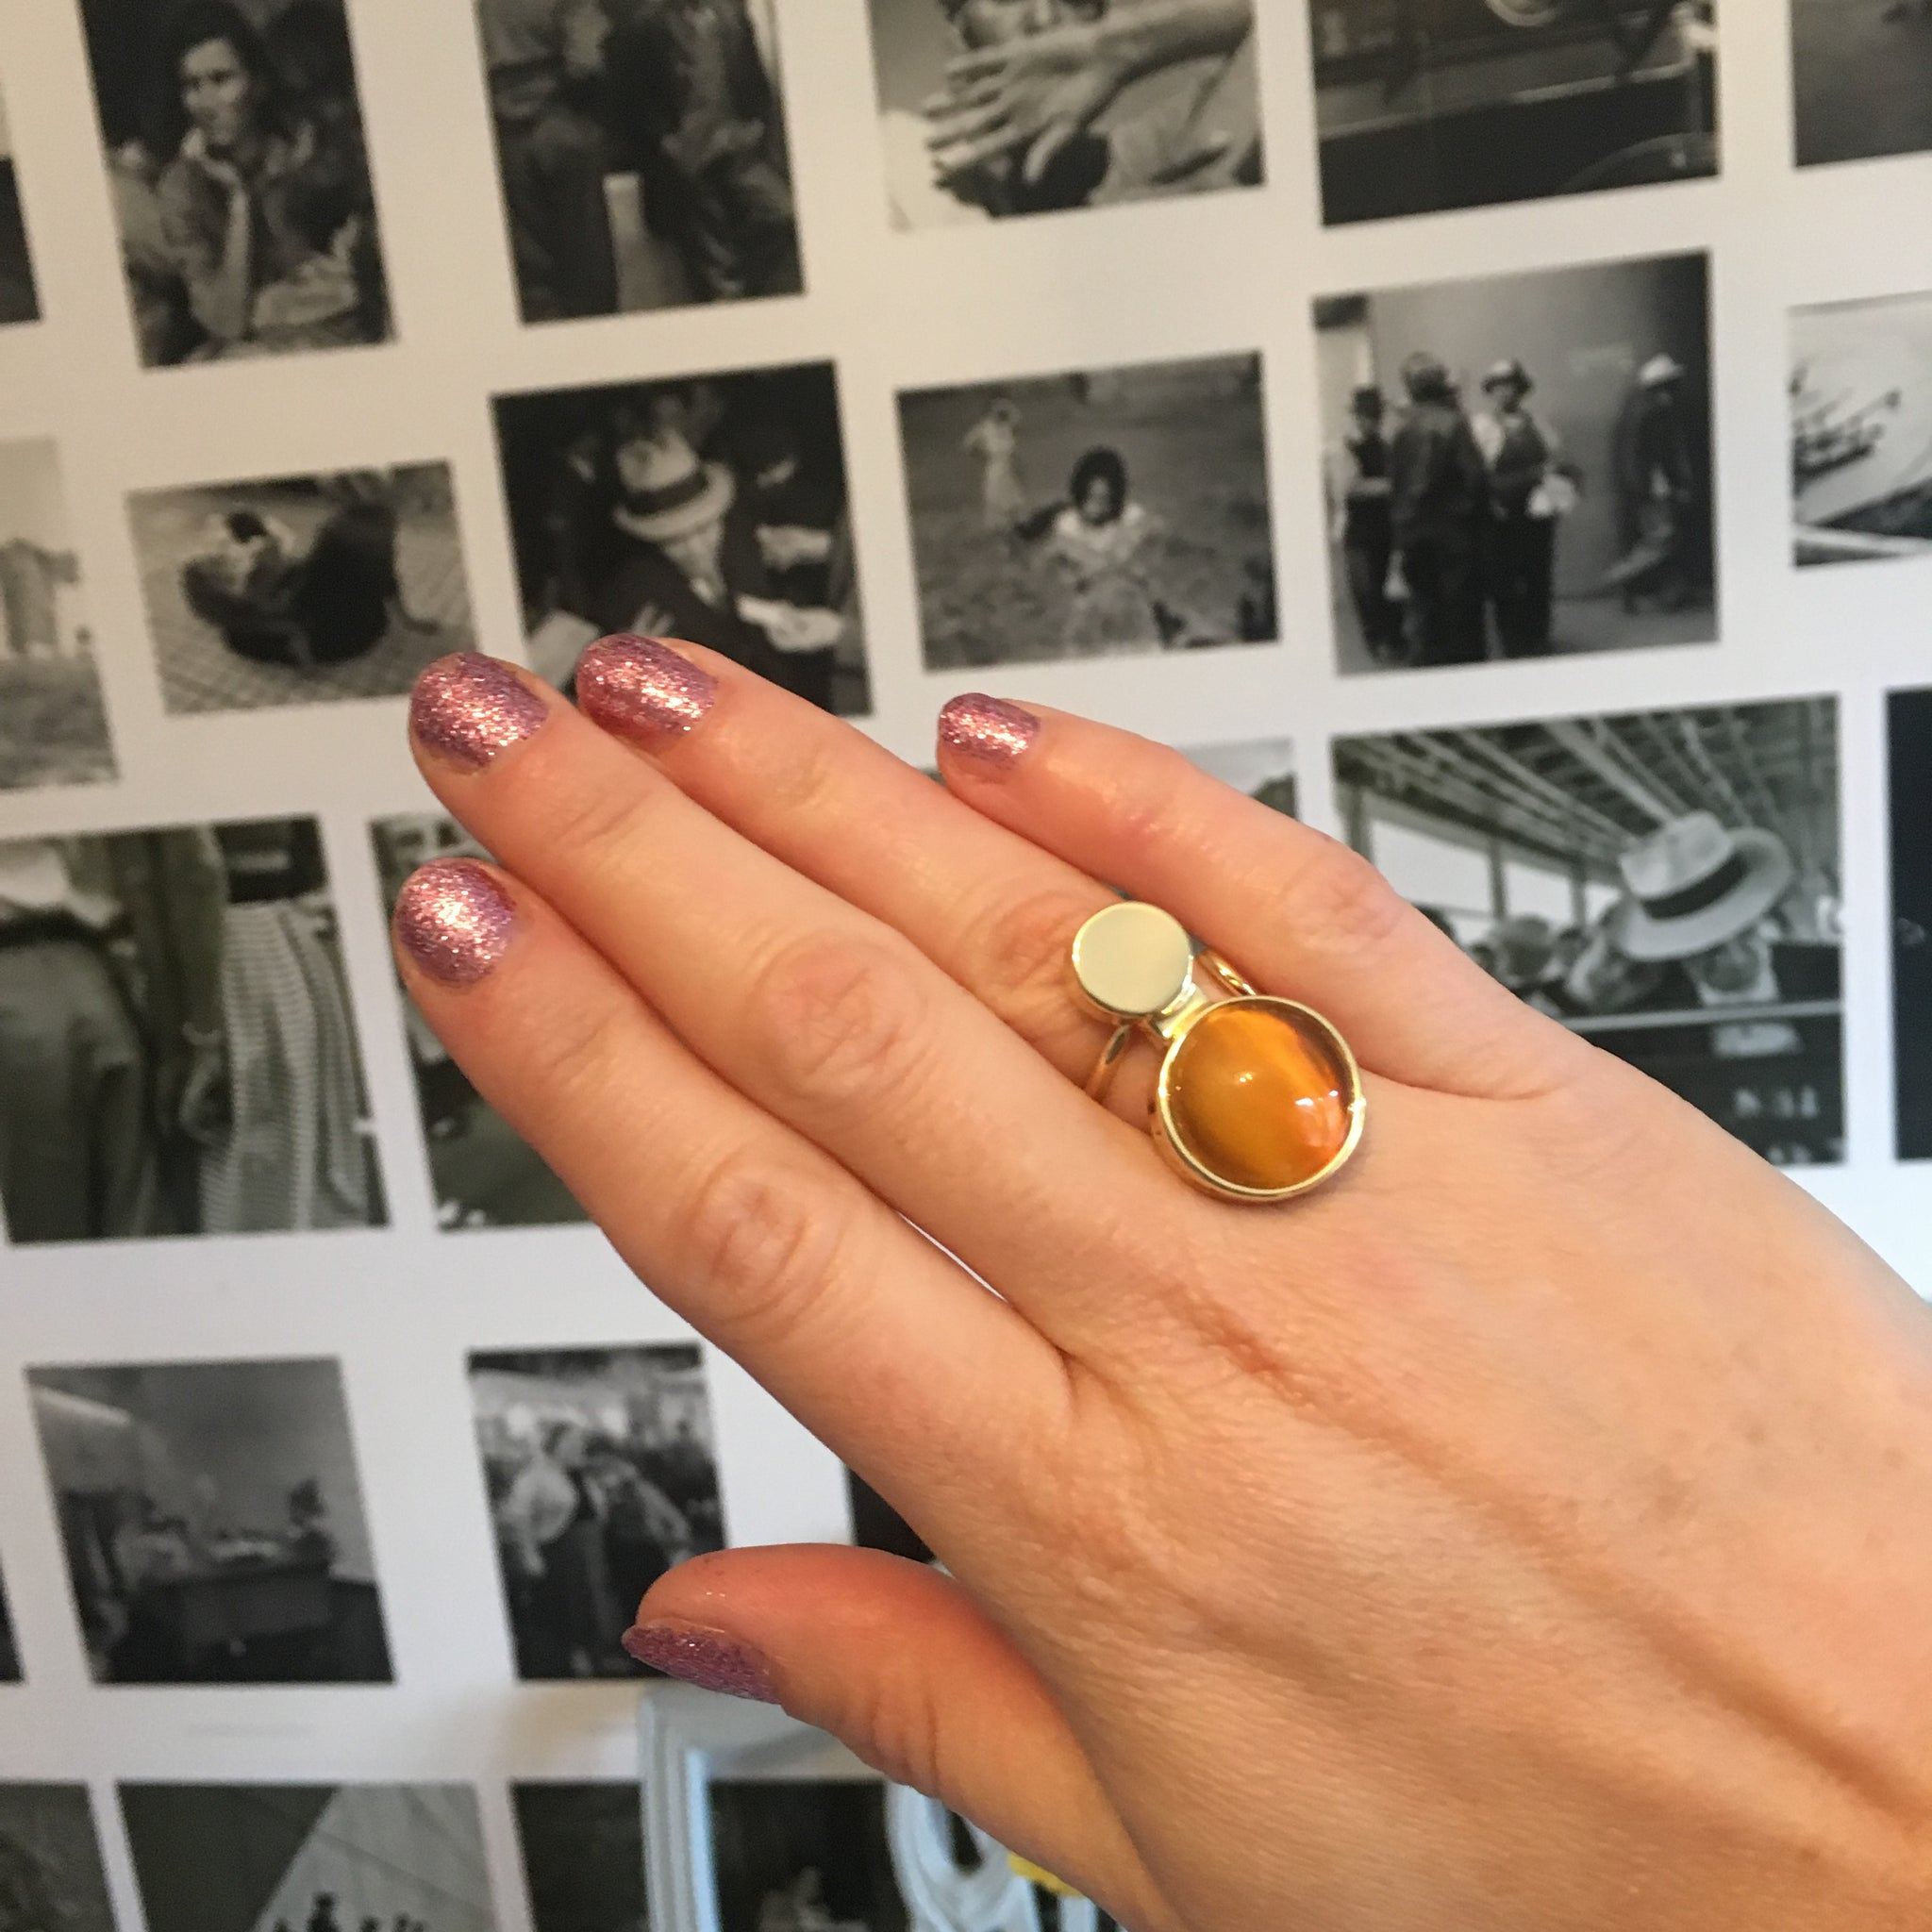 The Moon Ring Gold/Conjac